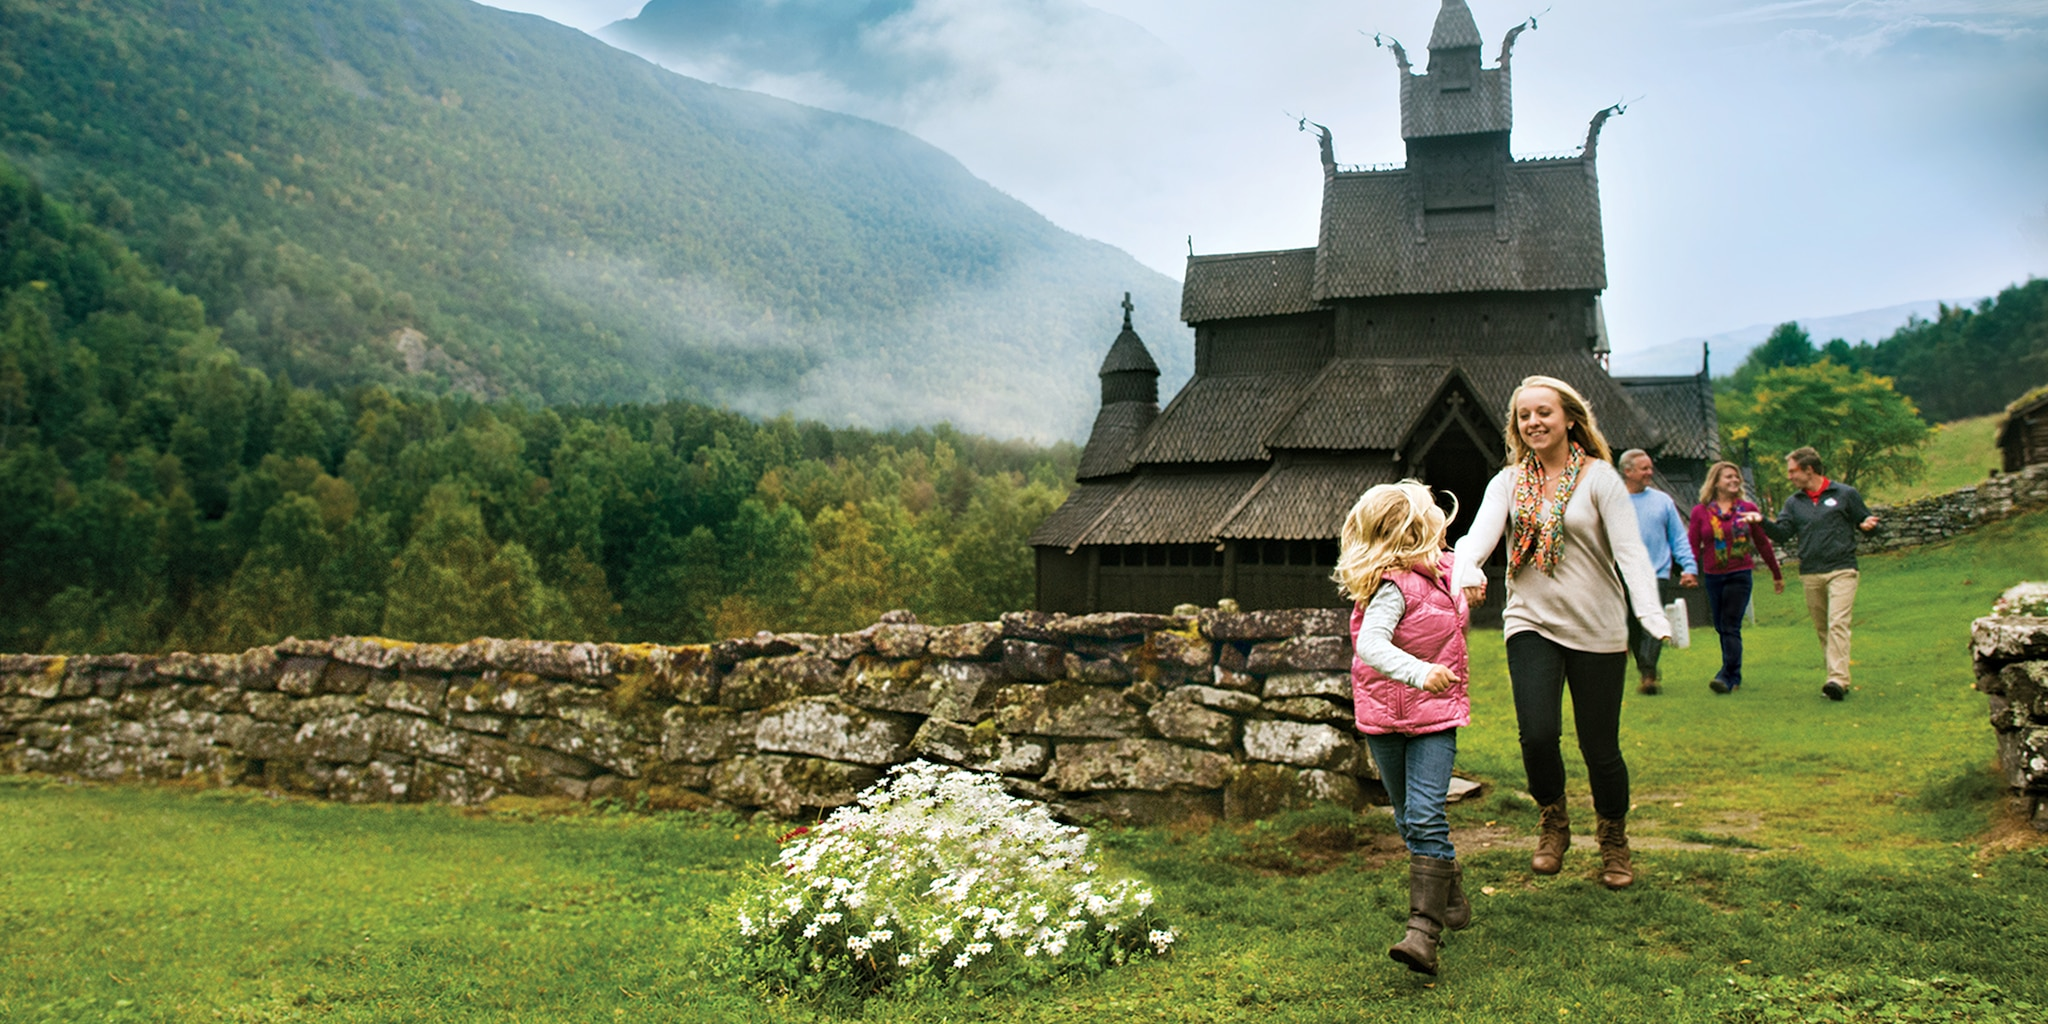 2 girls, their parents and an Adventure Guide walk in the field outside a stave church